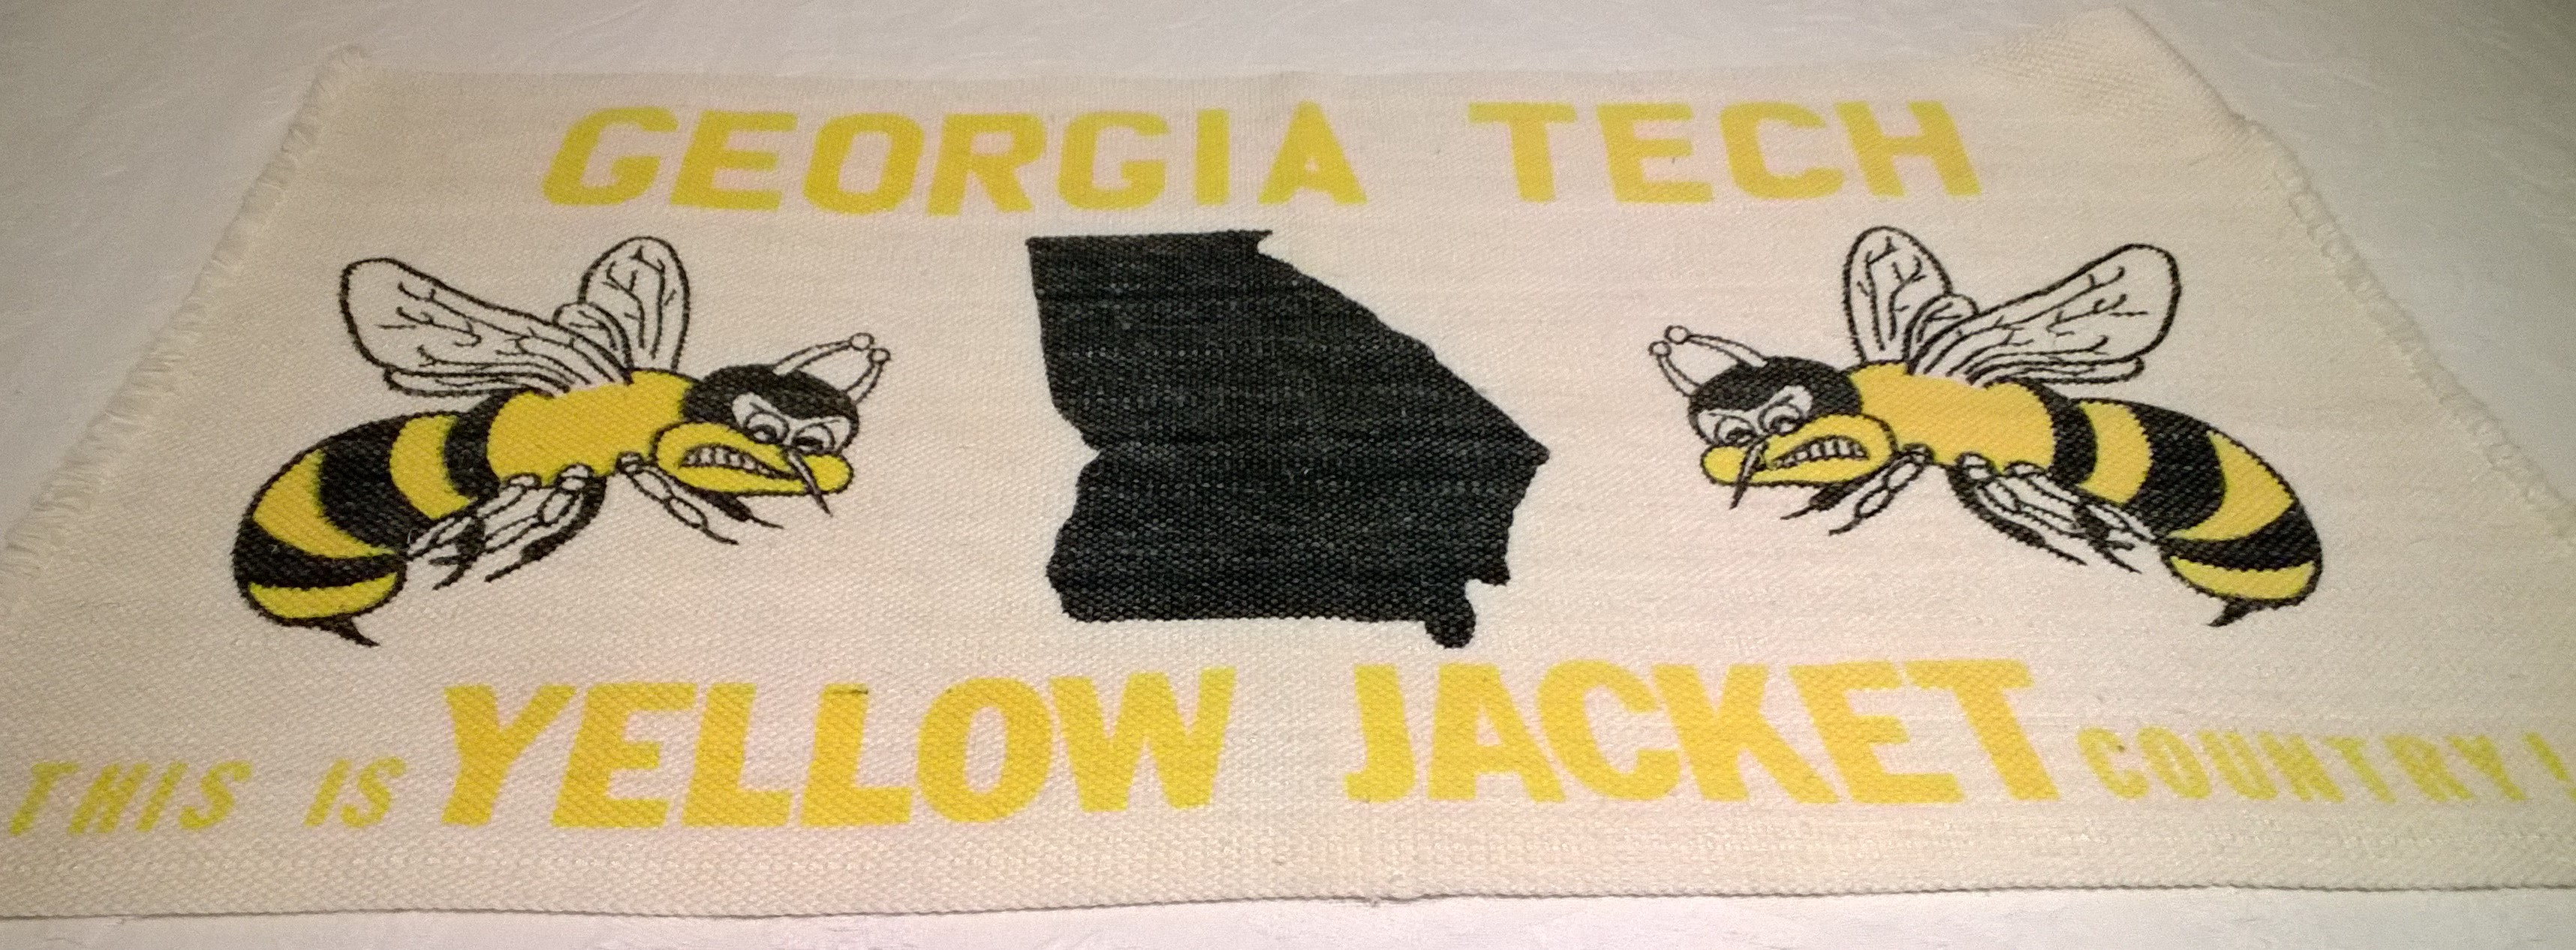 This is Yellow Jacket Country.jpg